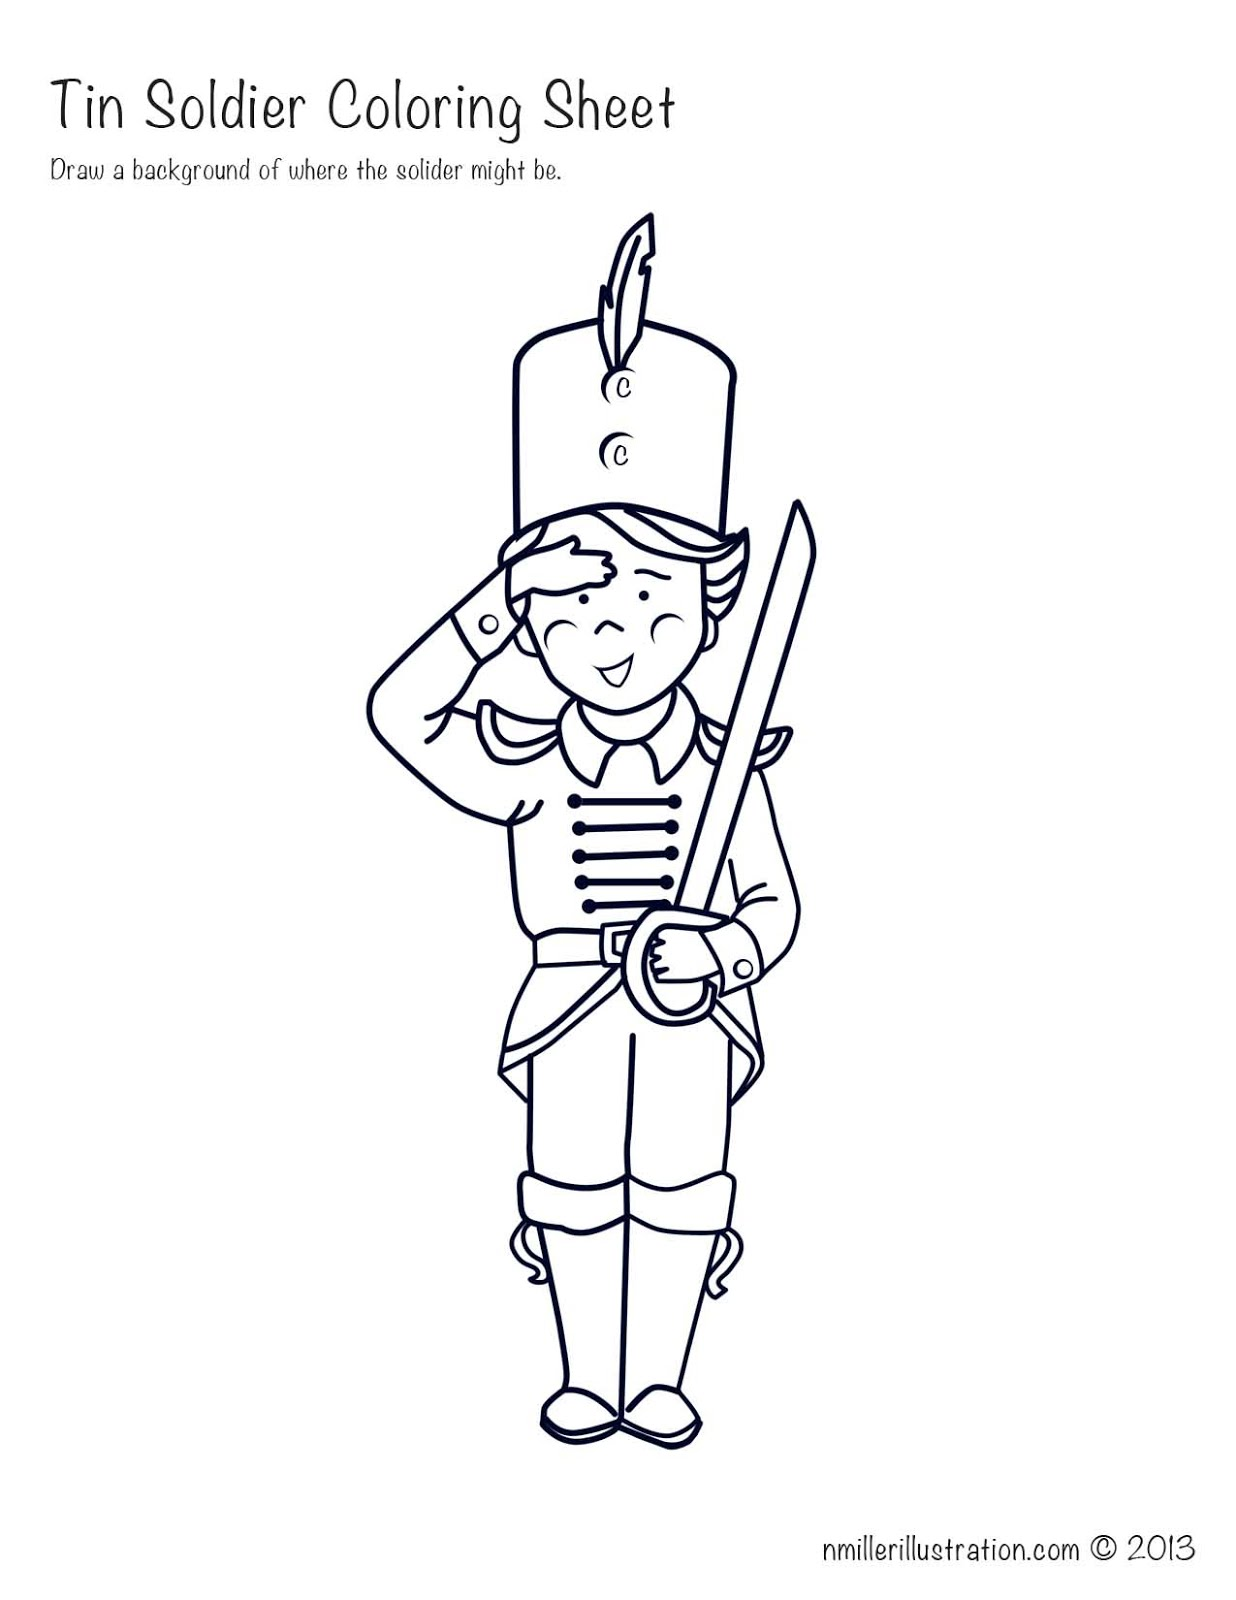 Picture This: Tin Soldier Coloring Sheet